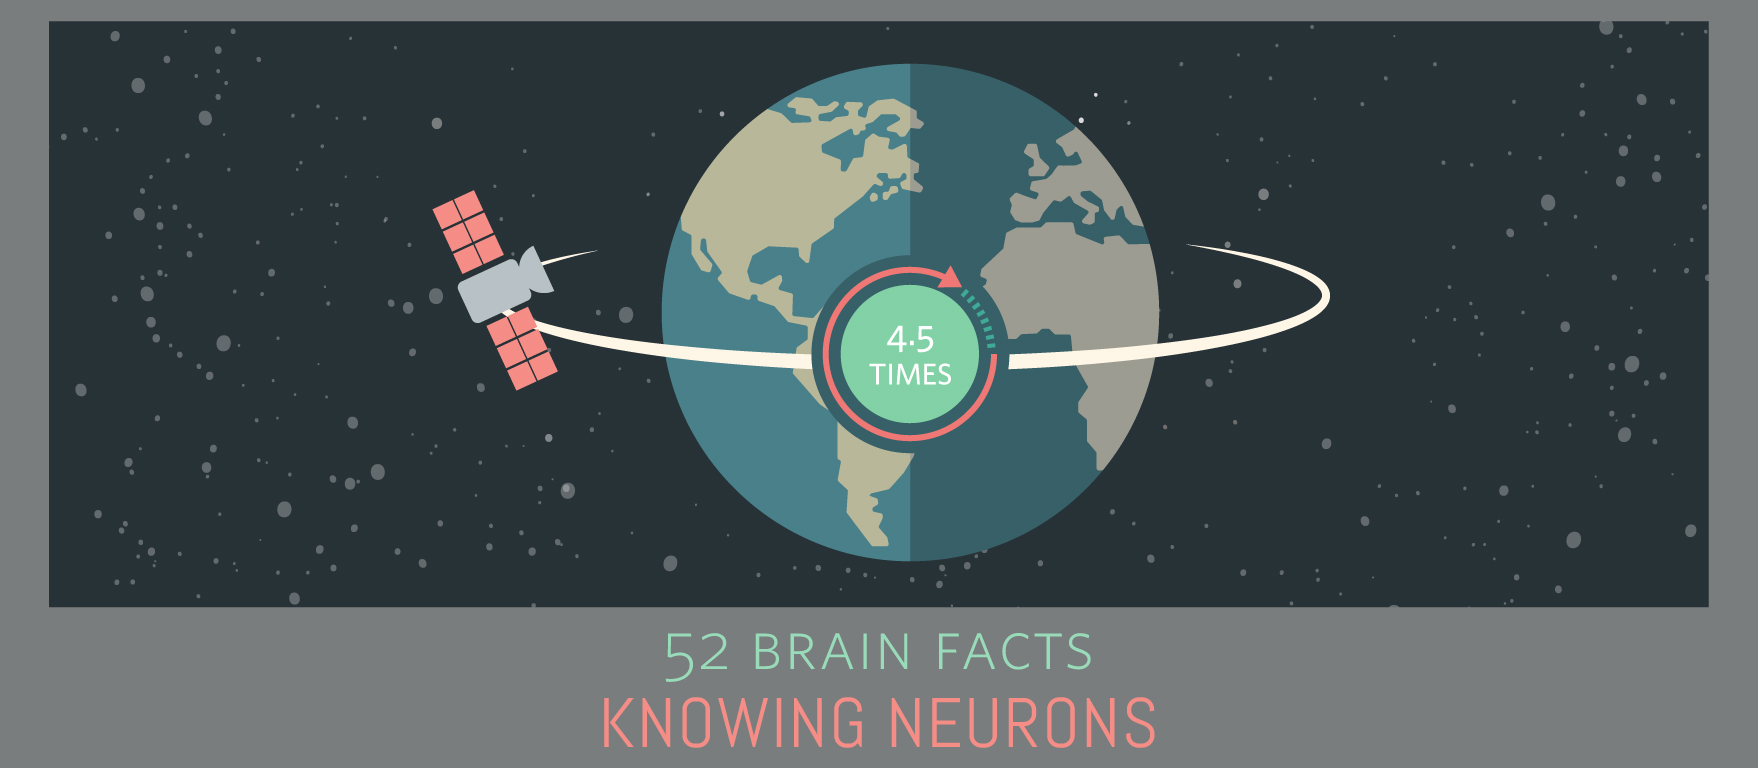 Myth or Fact? An adult brain has enough myelin to stretch from New York to Tokyo.